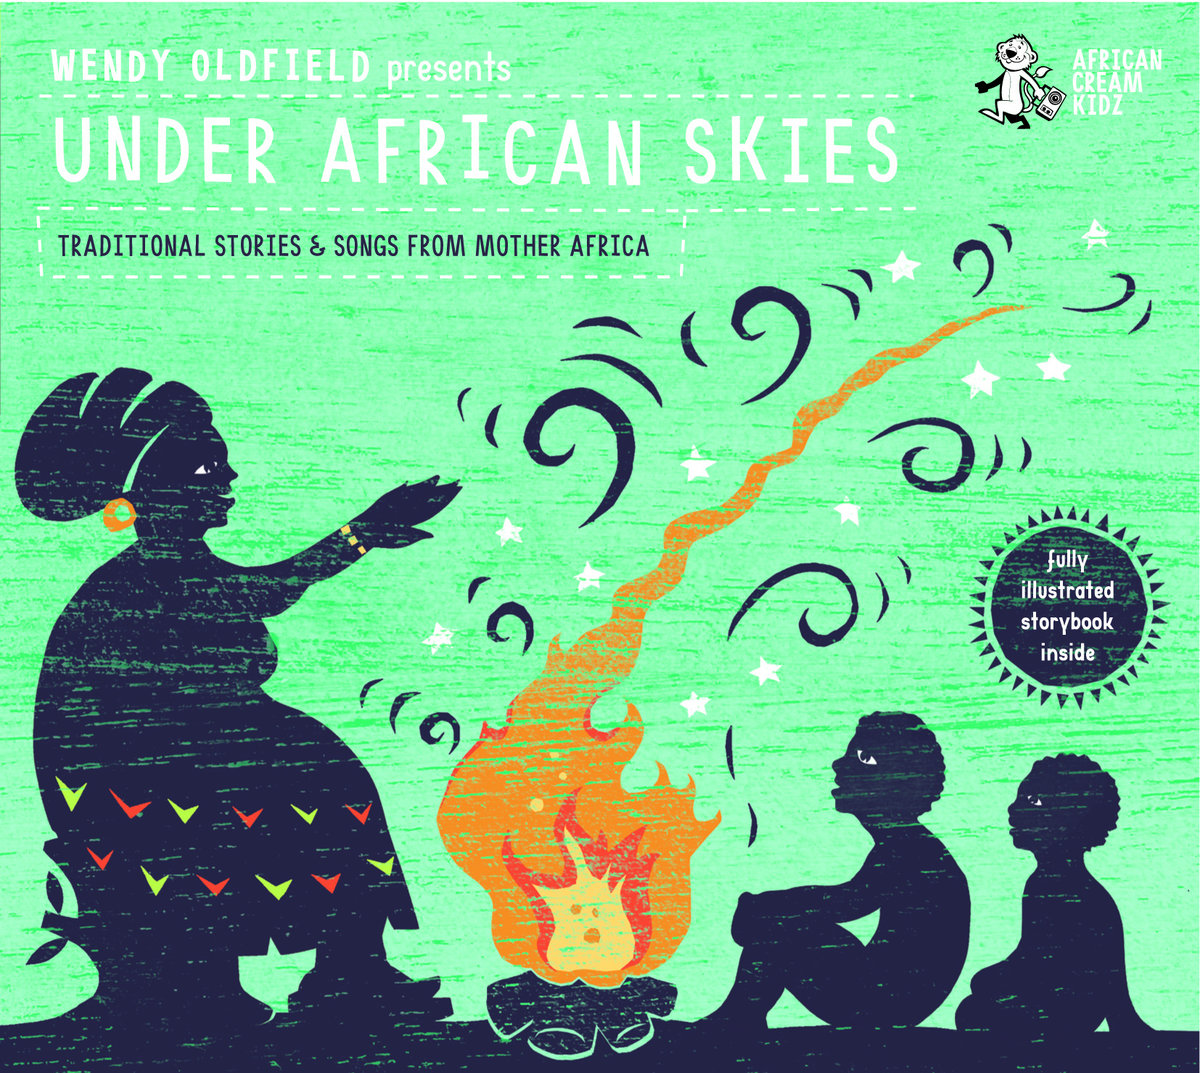 under african skies essay Odia ofeimun (born 16 march 1950) is a nigerian poet and polemicist, the author of many volumes of poetry, books of political essays and on cultural politics under african skies (lagos: hornbill house, 1990.